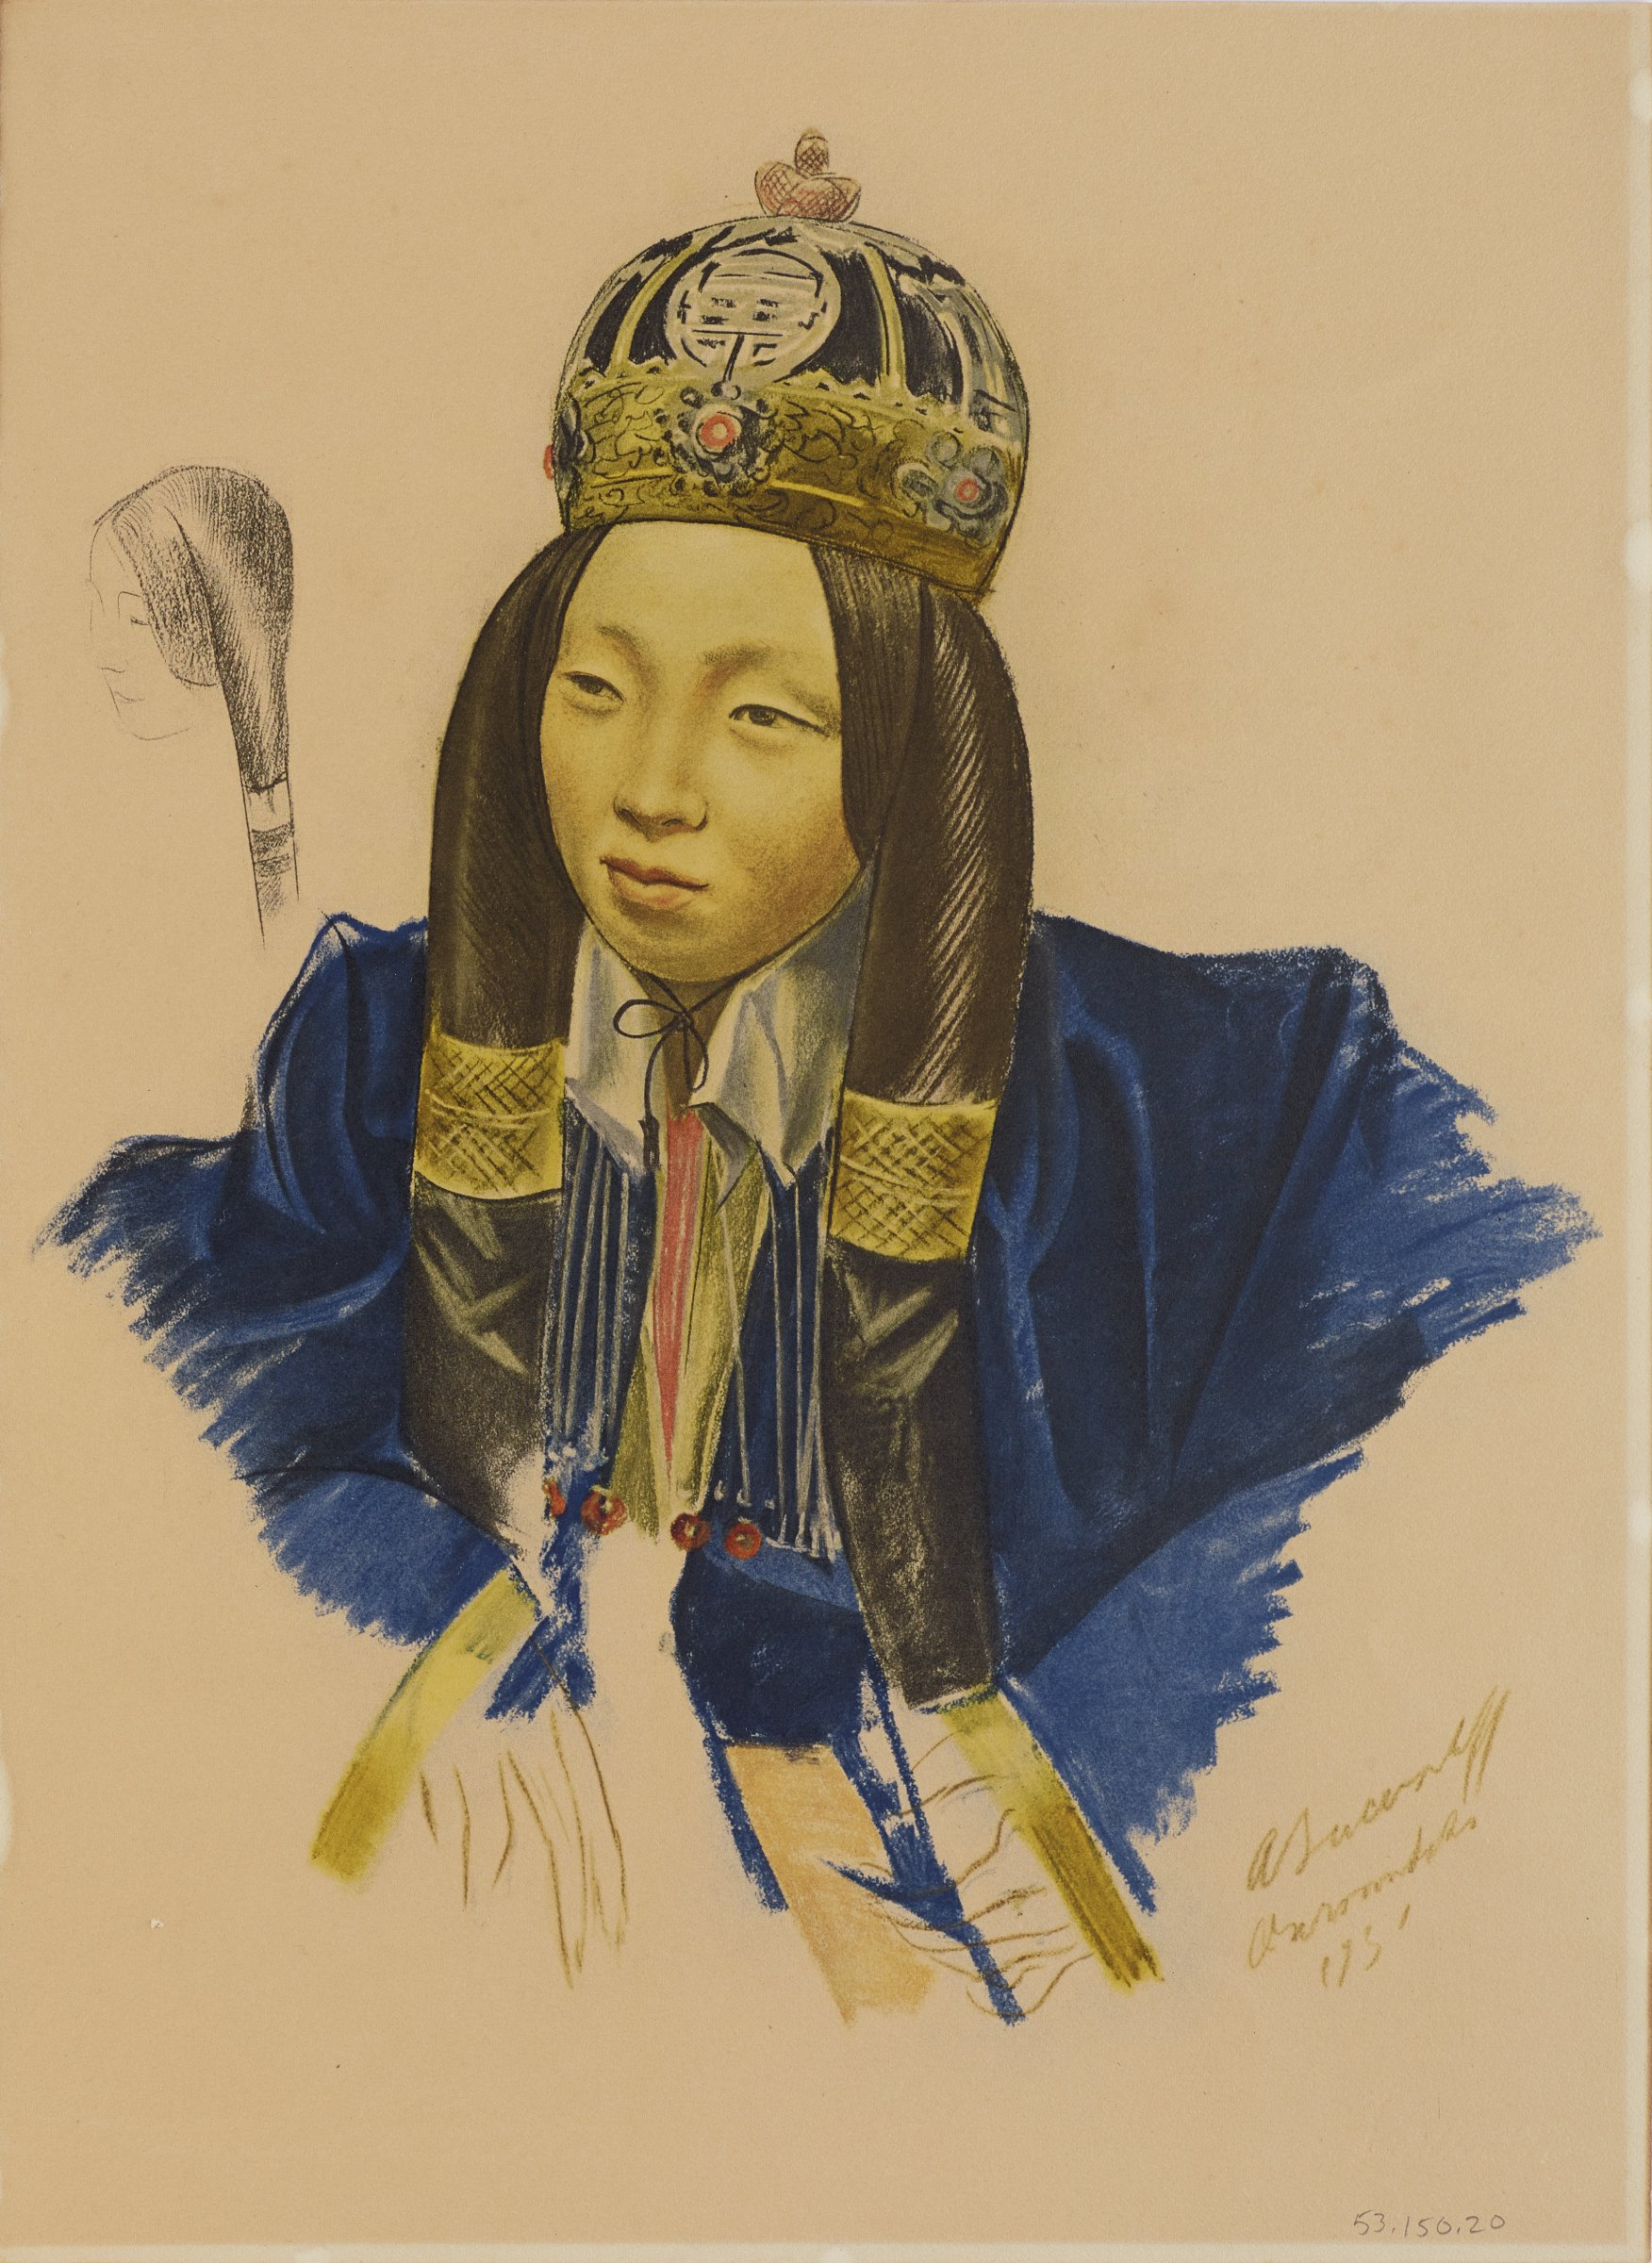 Portrait of a female figure facing slightly left. She wears a blue robe, crown with jewels, and her hair is decorated with gold ornaments. Behind her on the left is an outline of the head of a small second figure. This series is a product of Jacovleff's involvement in the Expédition Citroën Centre-Asie.